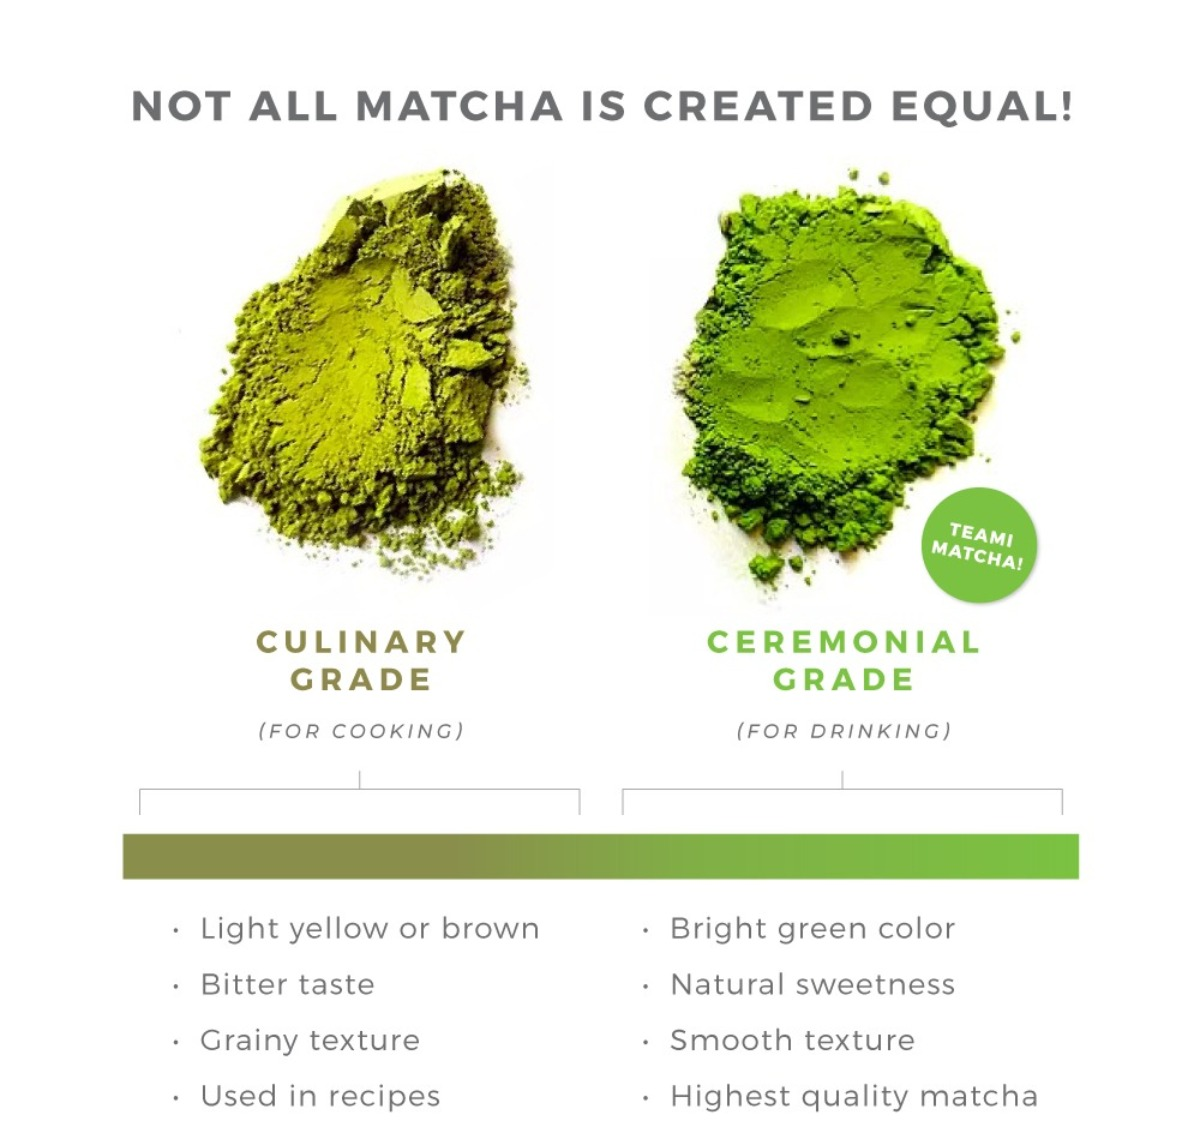 culinary grade matcha vs ceremonial grade matcha green tea